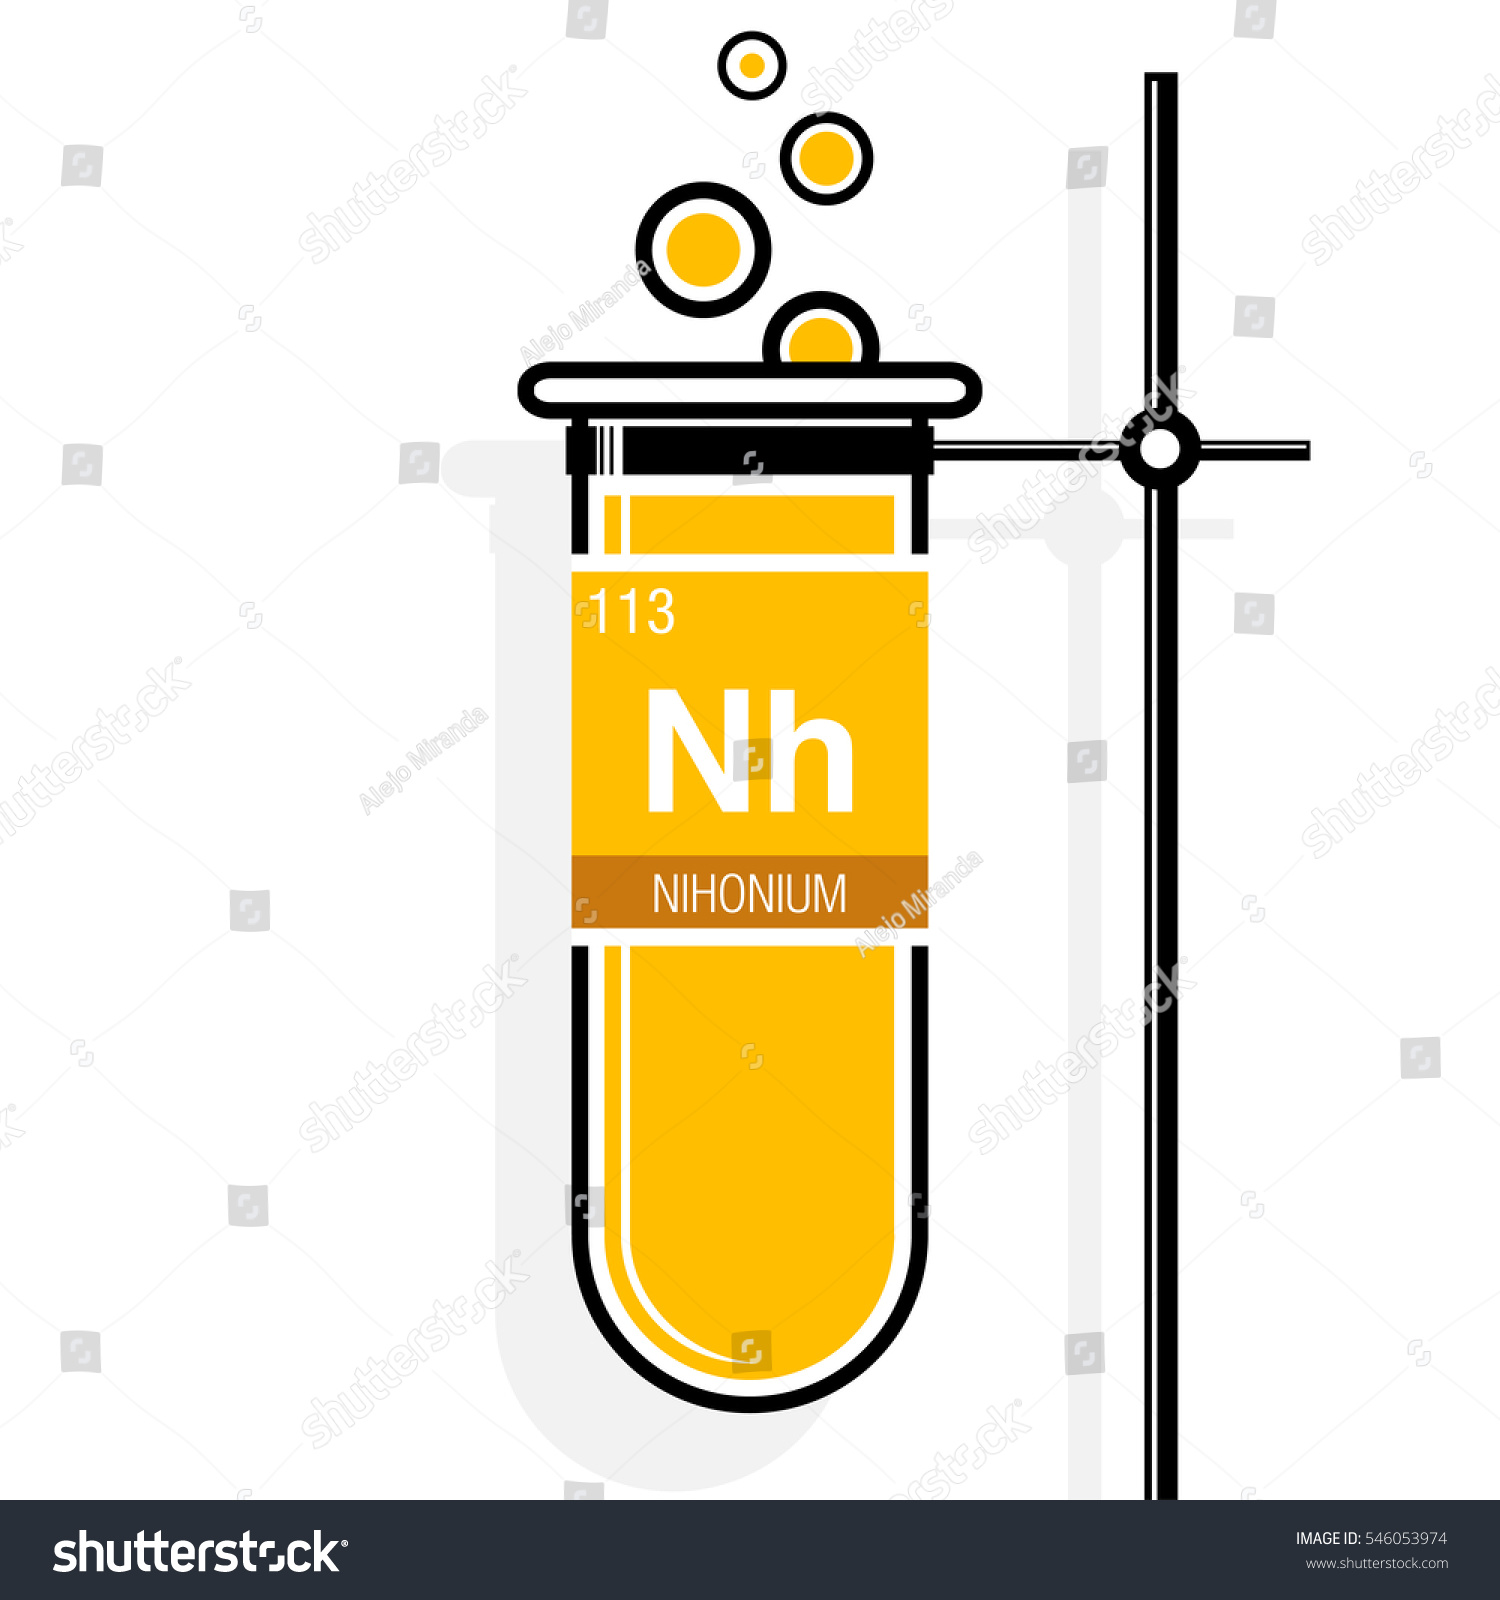 Nihonium symbol on label yellow test stock vector 546053974 nihonium symbol on label in a yellow test tube with holder element number 113 of gamestrikefo Image collections